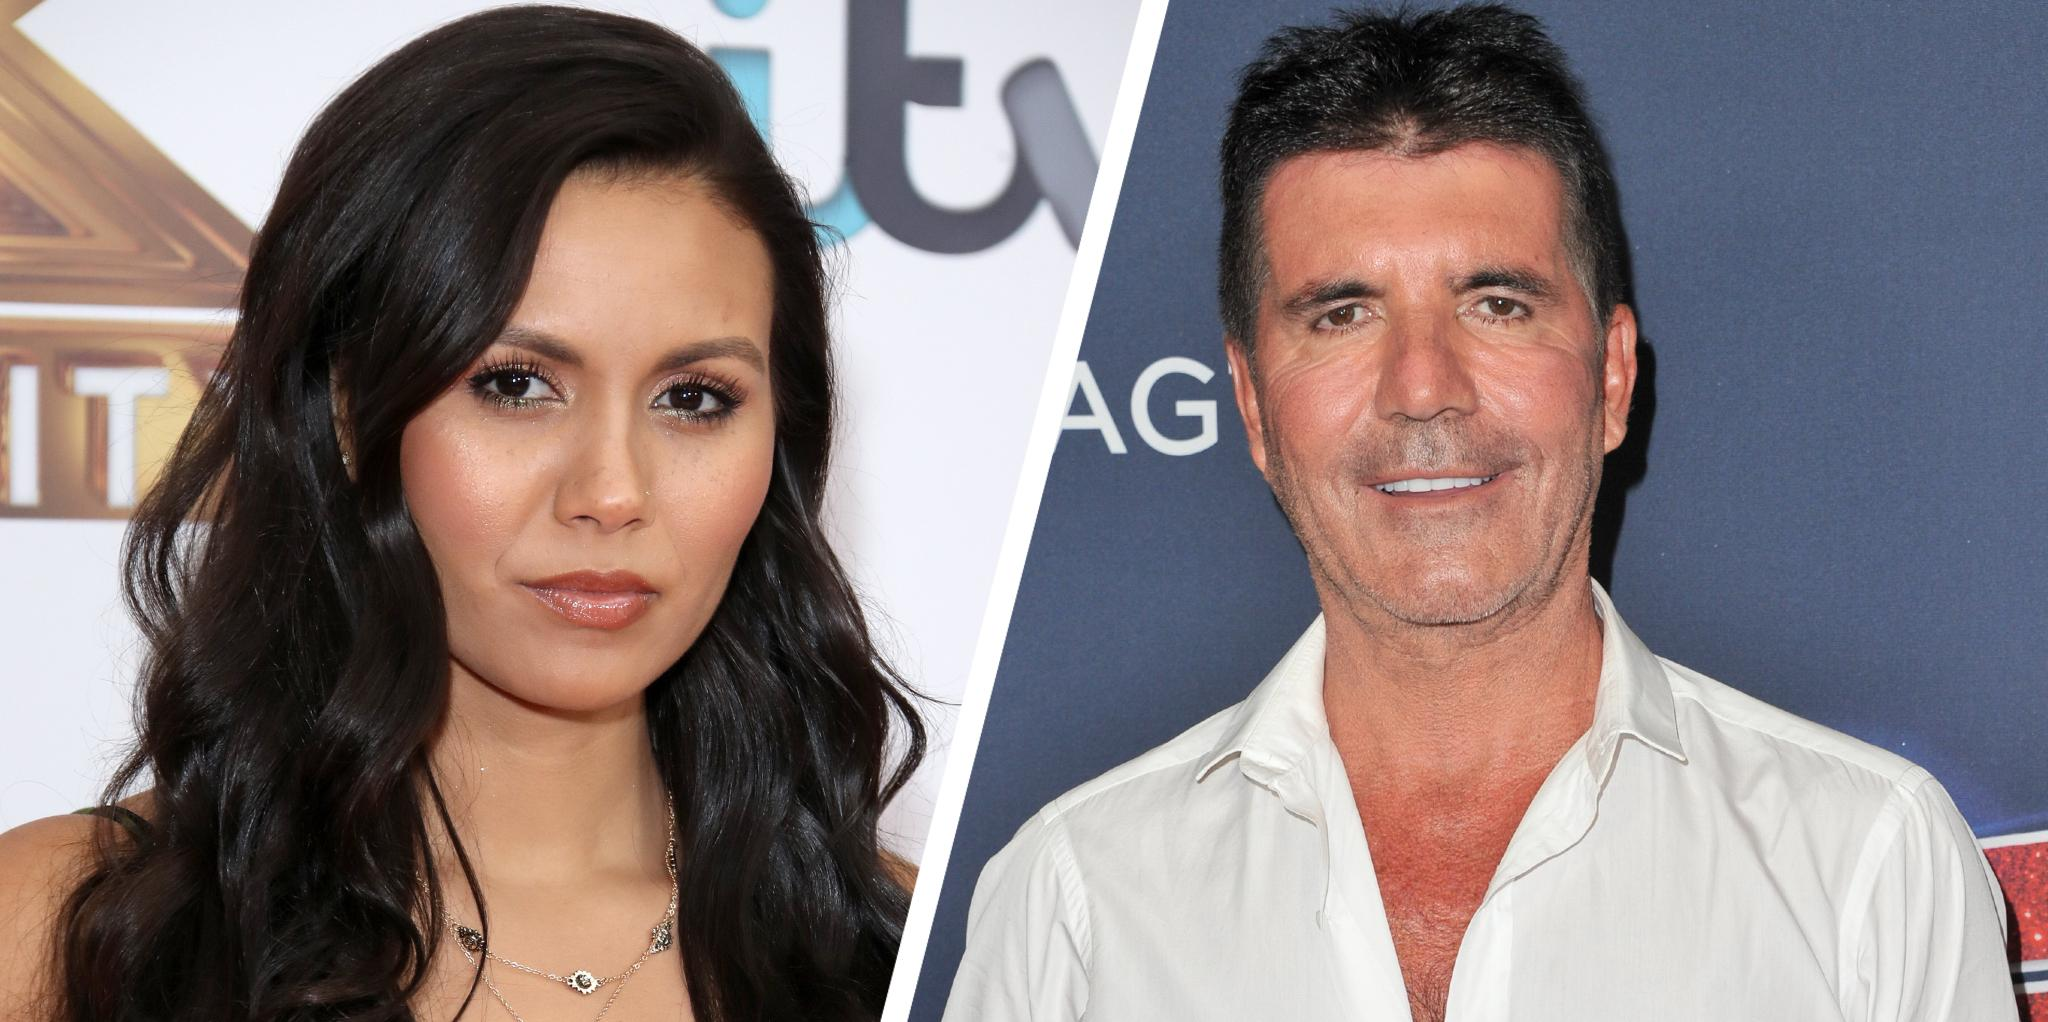 Olivia Olson fumes at Simon Cowell after X Factor: Celebrity axe